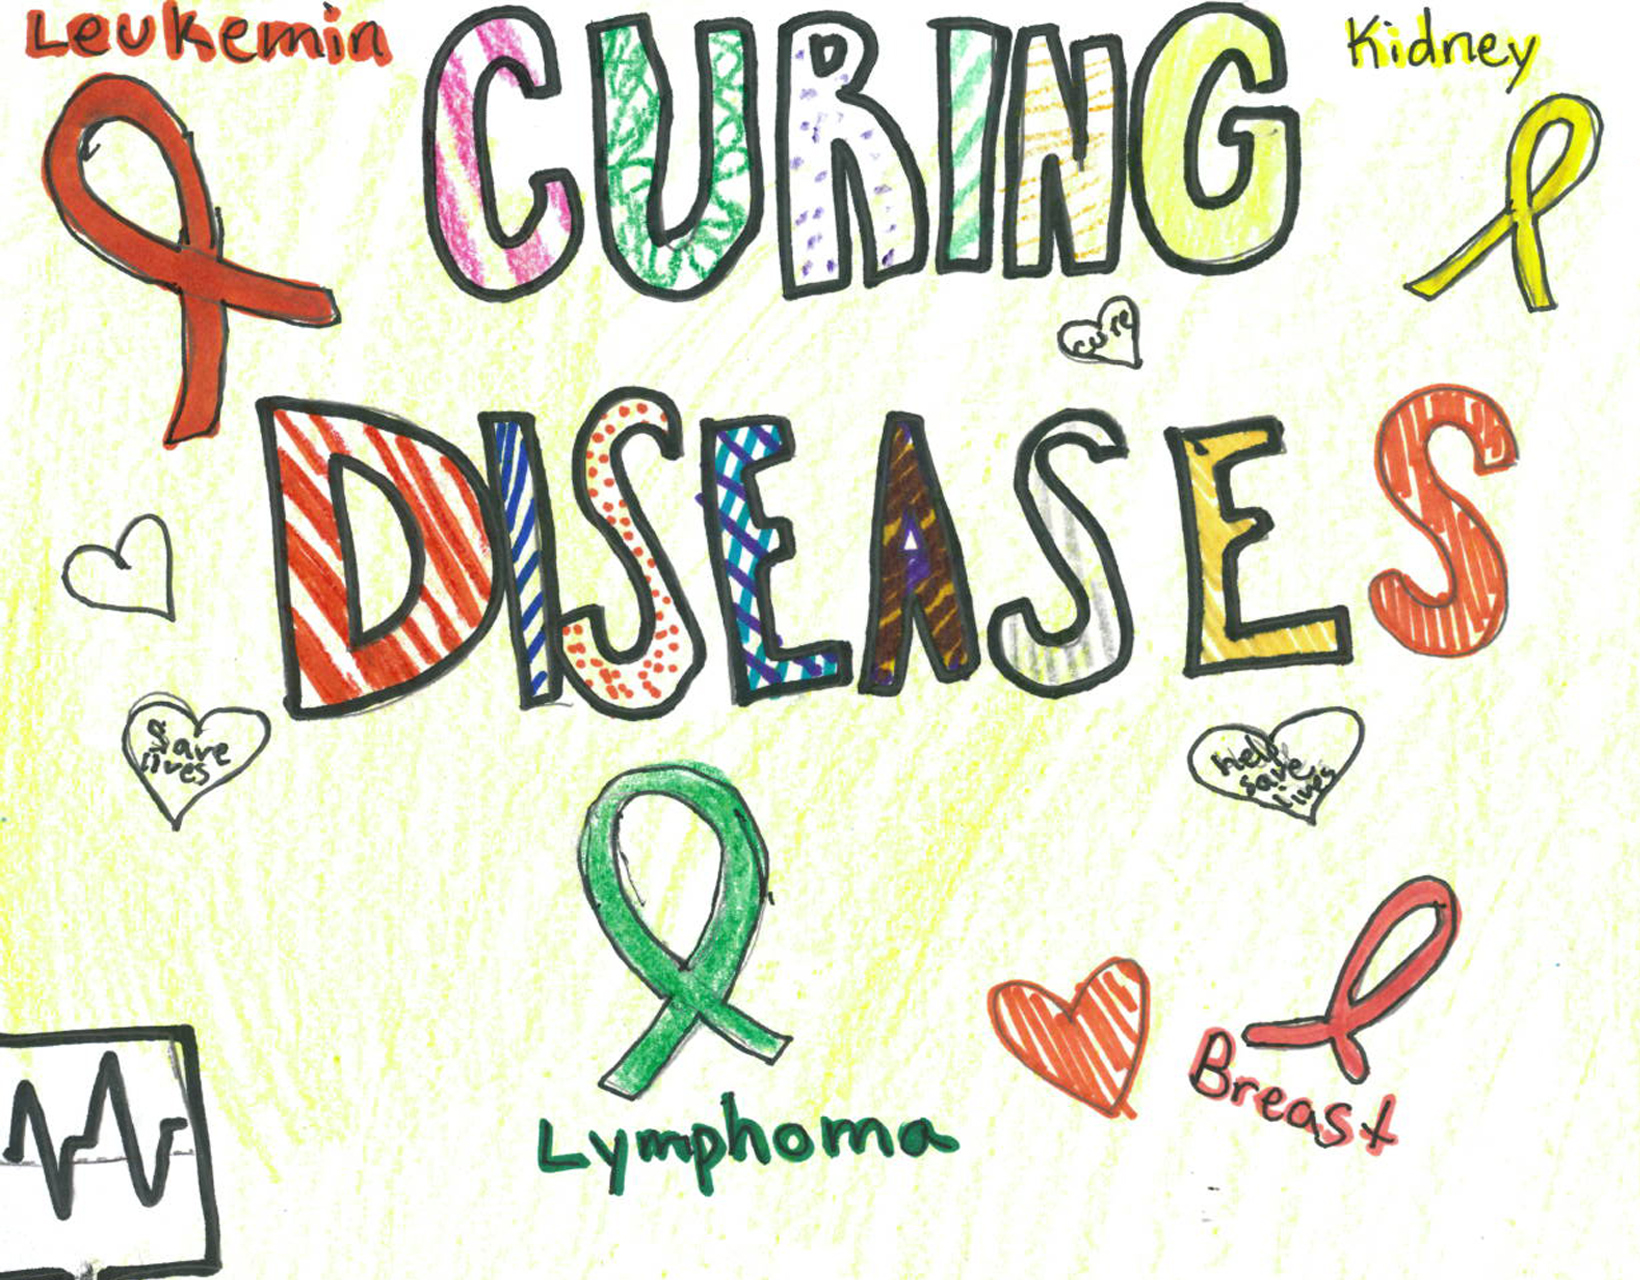 Children's drawing of a cancer survivor, making important the act of curing diseases.